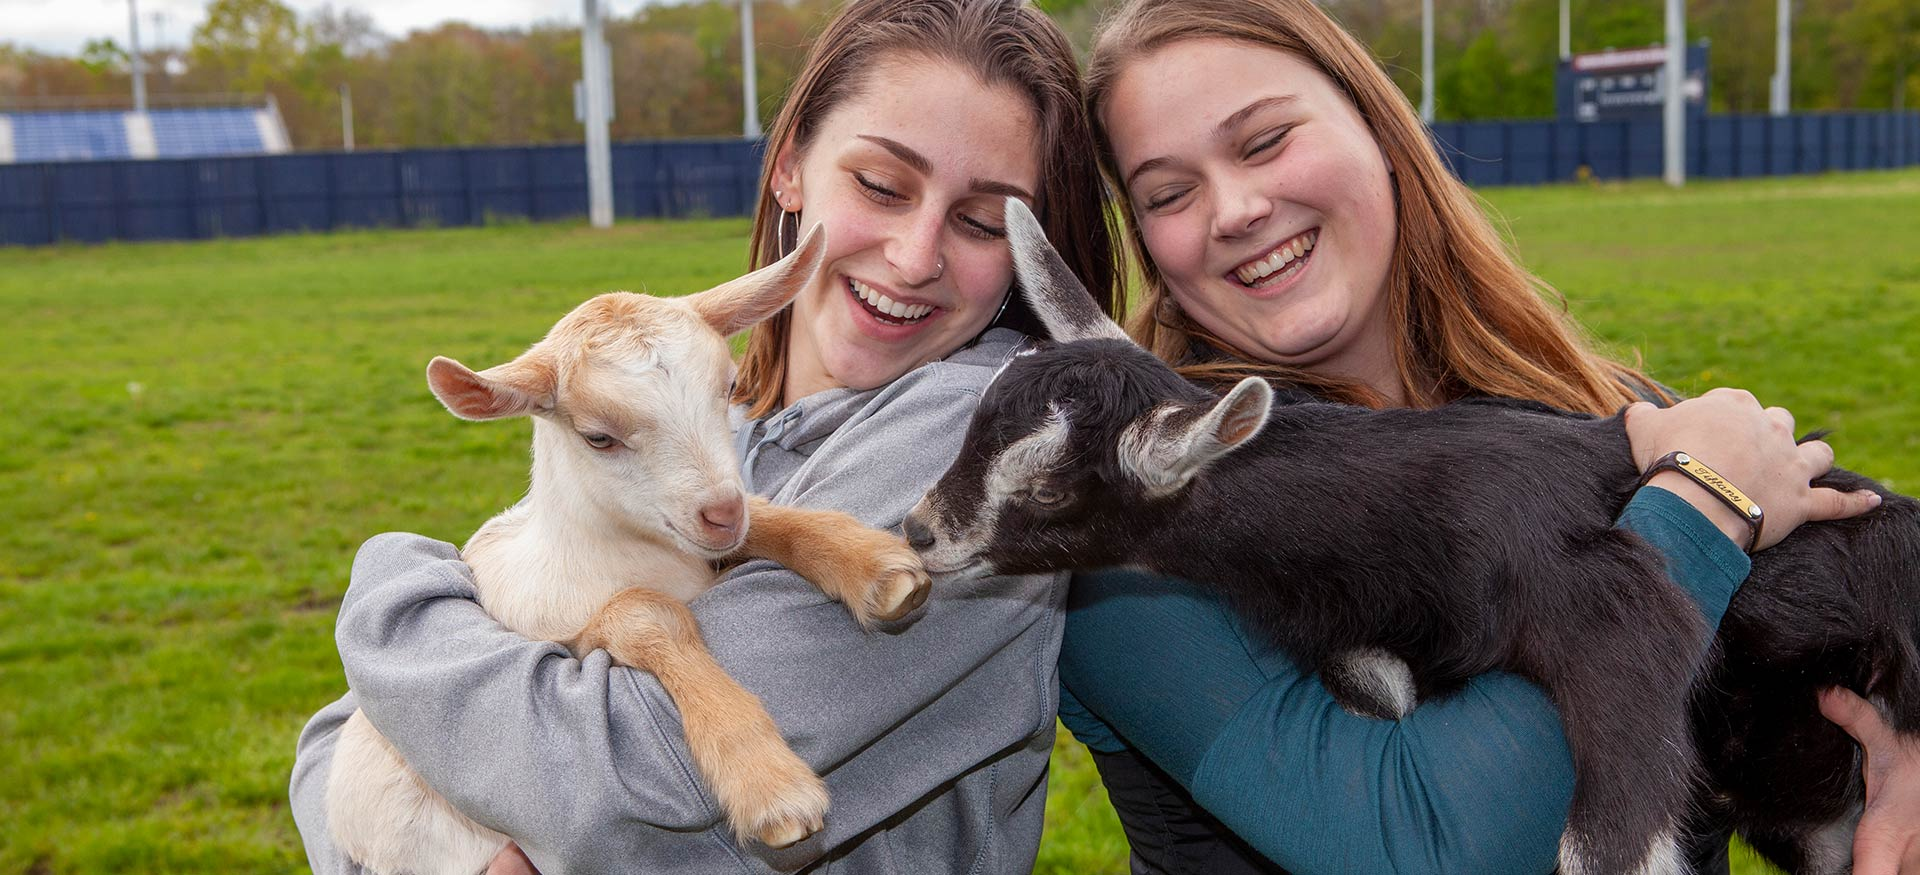 Students holding baby goats